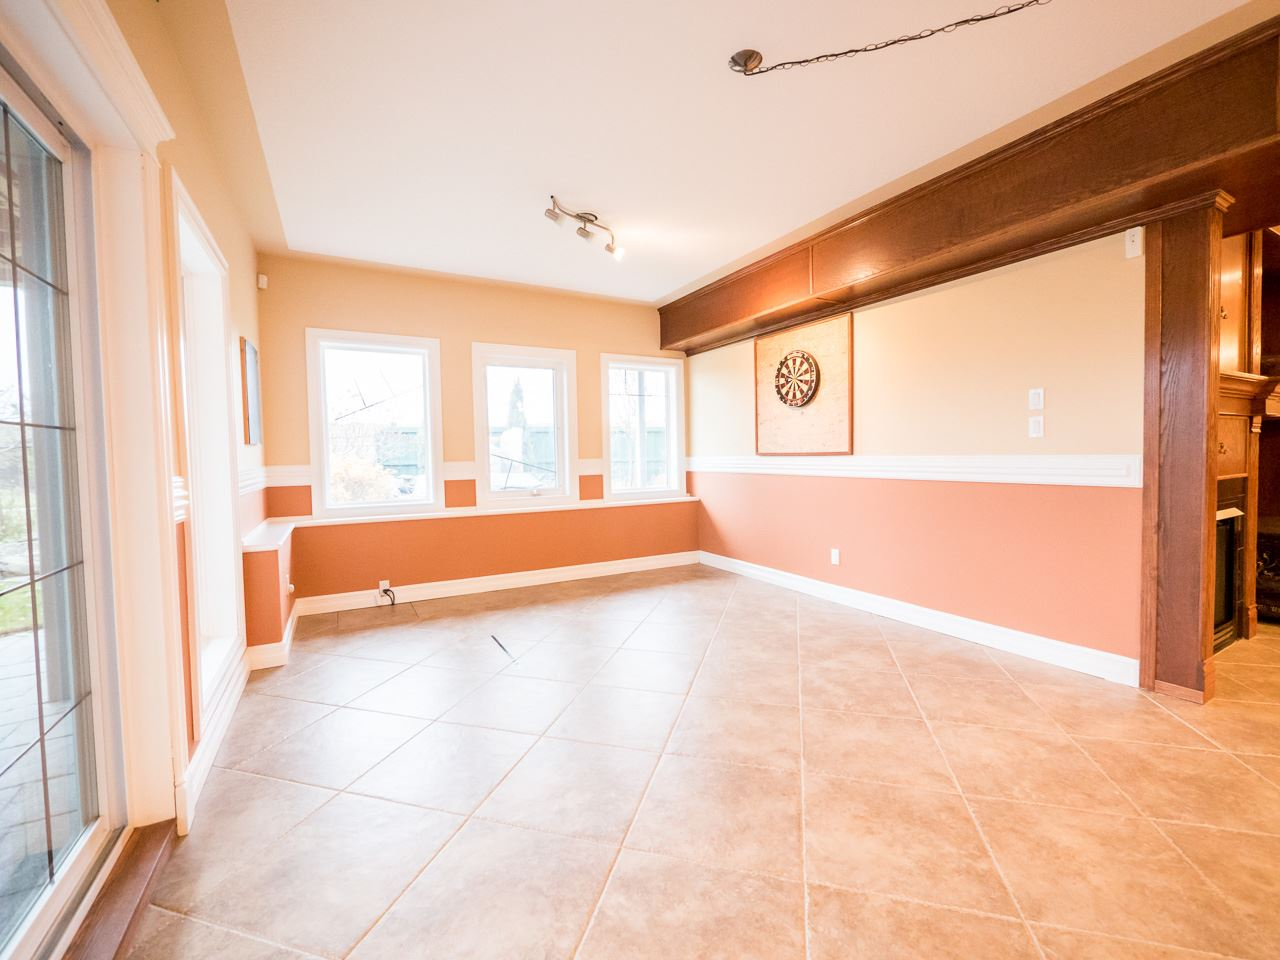 Plenty of space for a night of dancing in this spacious rec room.